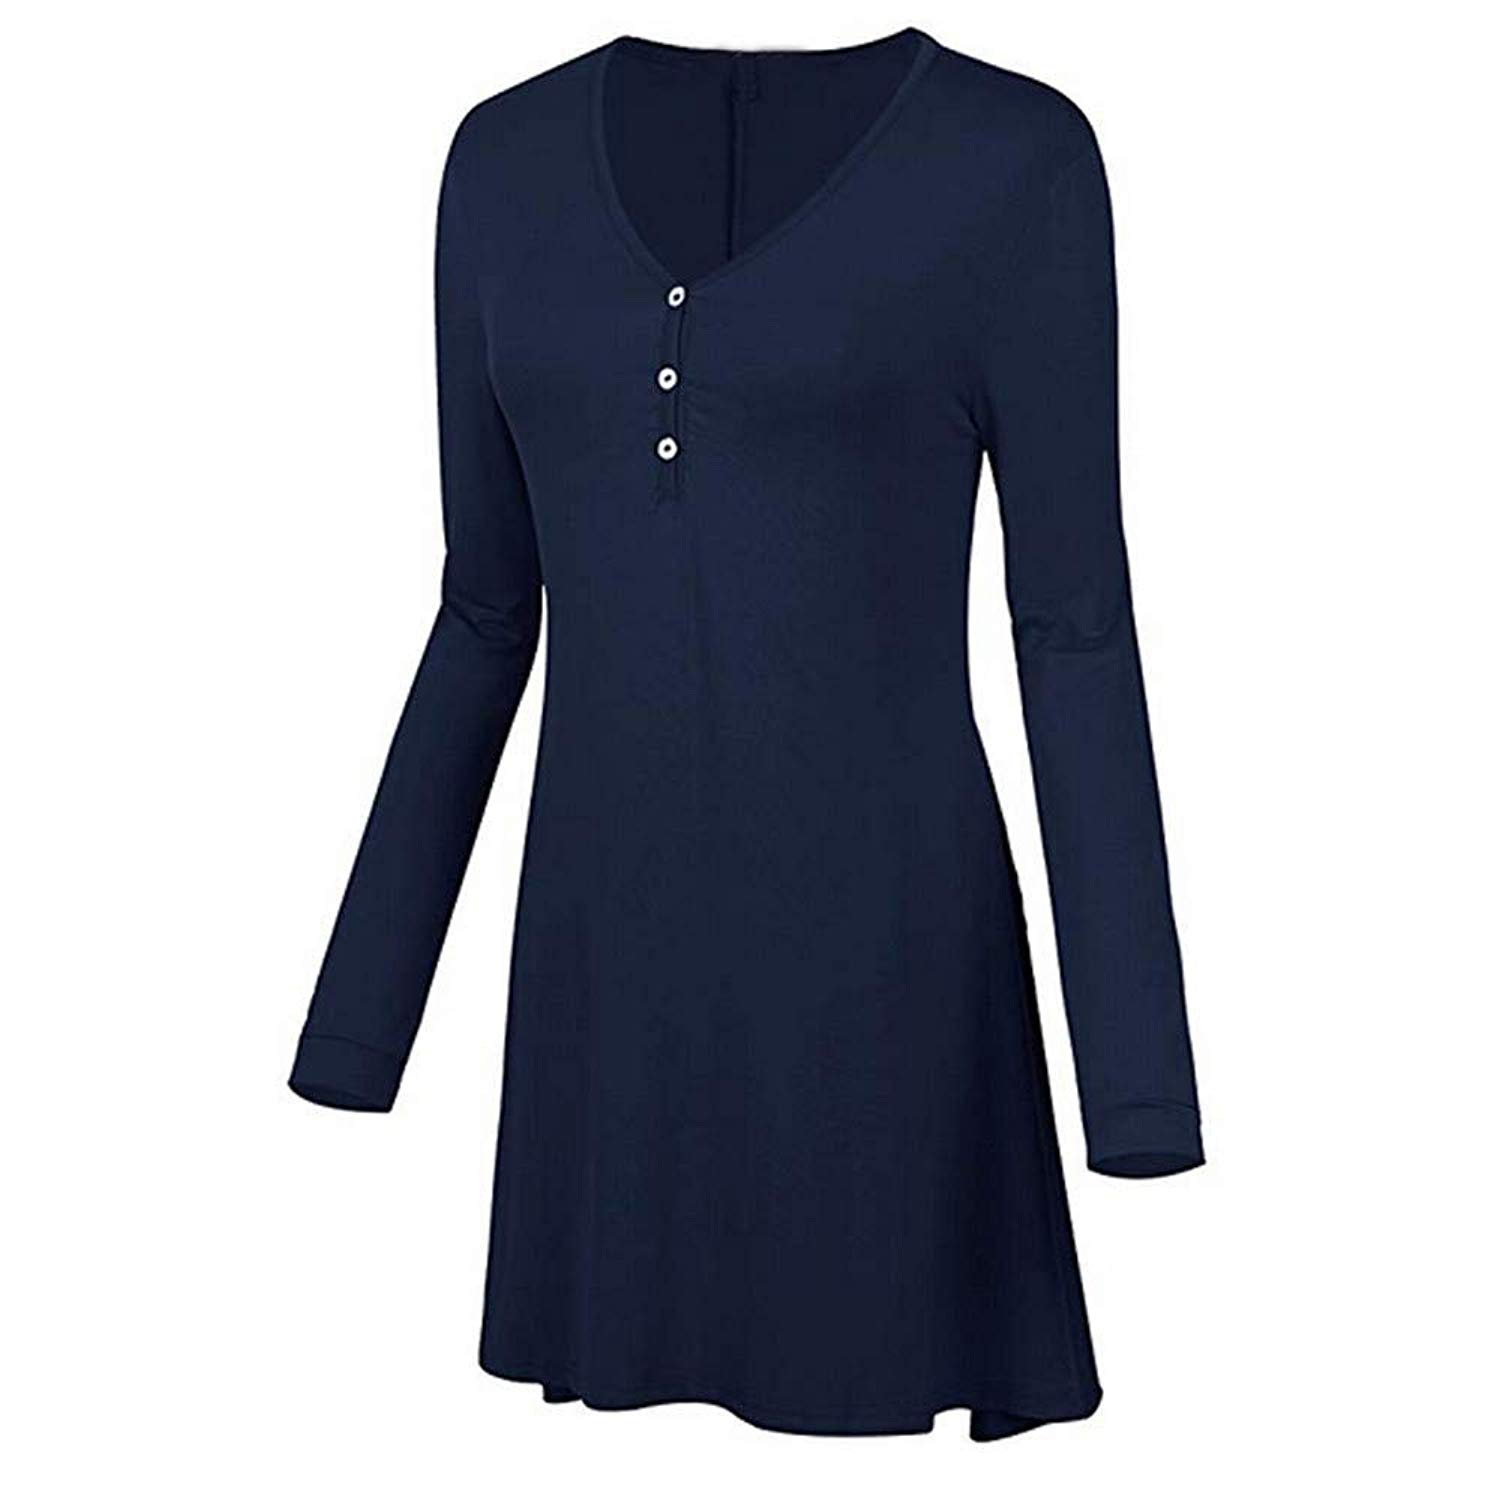 Women Tops Clearance Sale! Women's Shirt Plus Size Casual Solid Long Sleeve Tunic Botton V-Neck Blouse Top